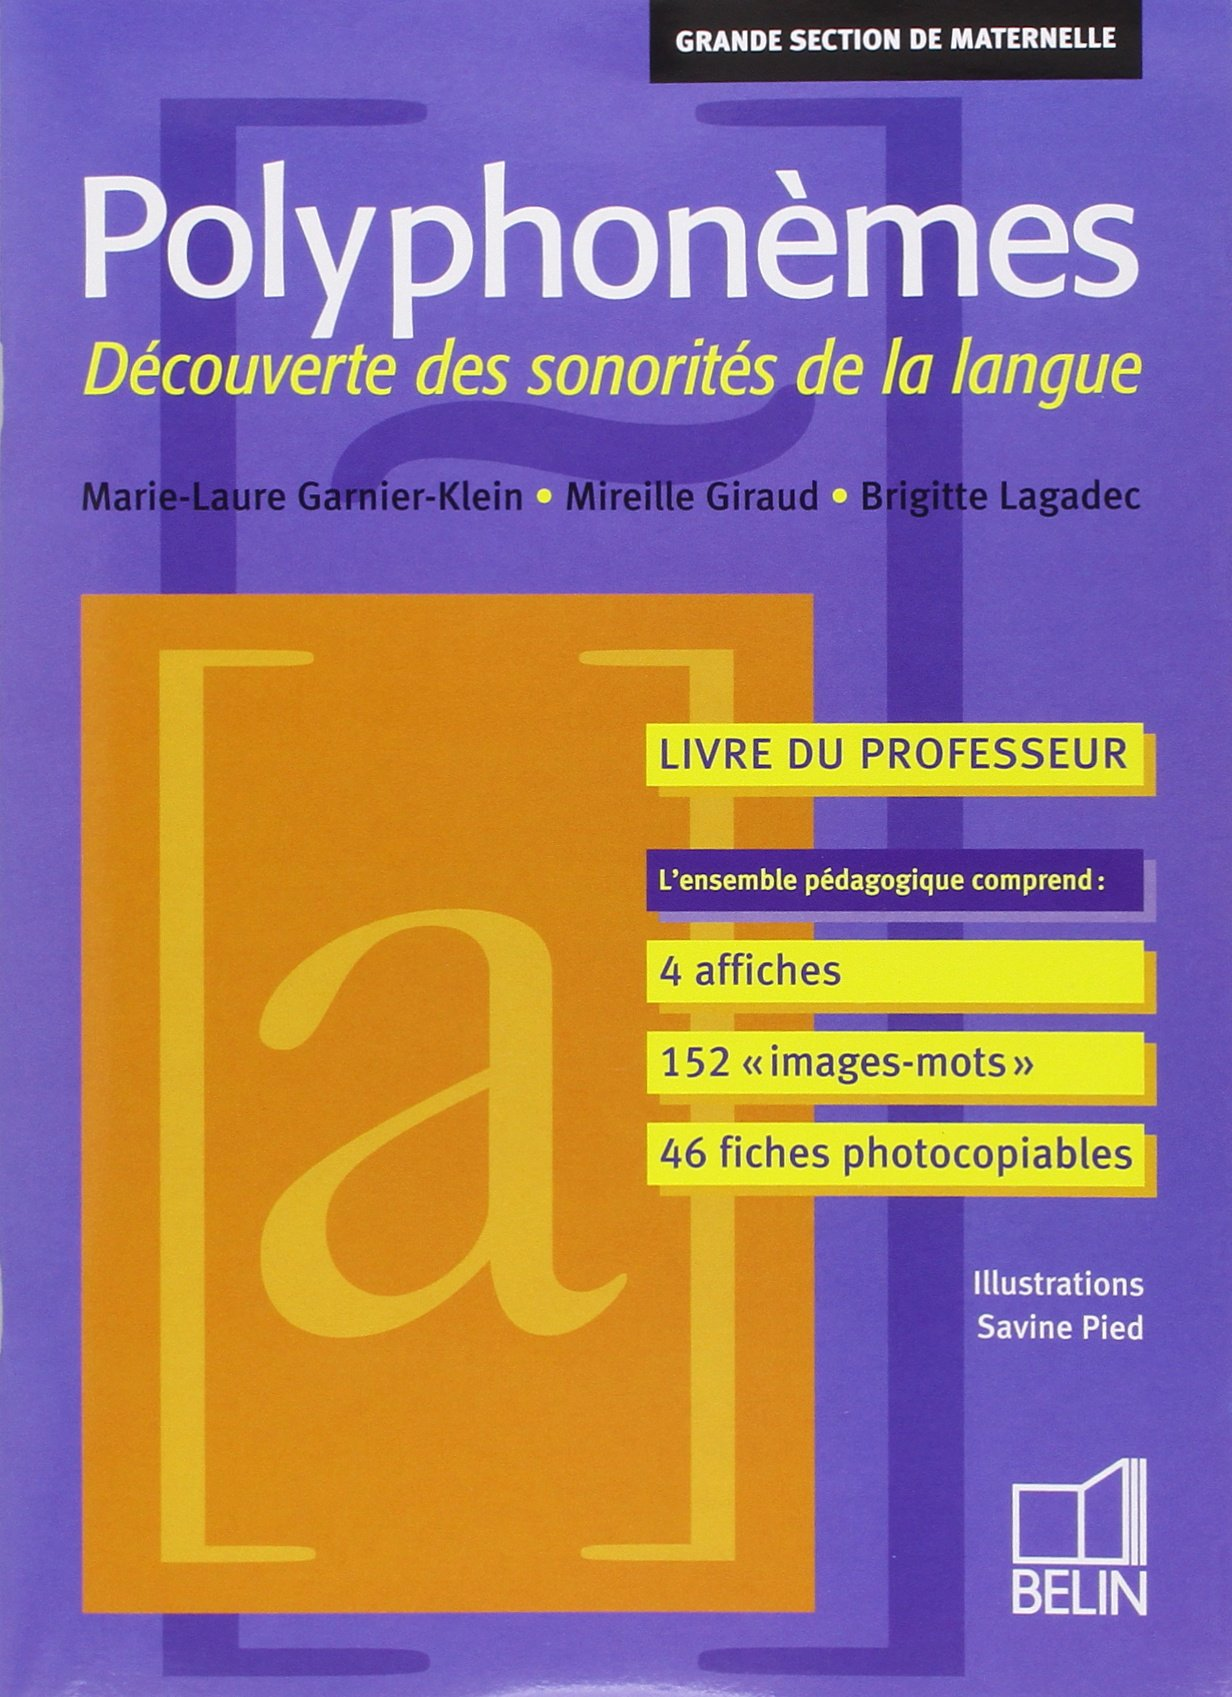 Valisette polyphonemes lect. gde section